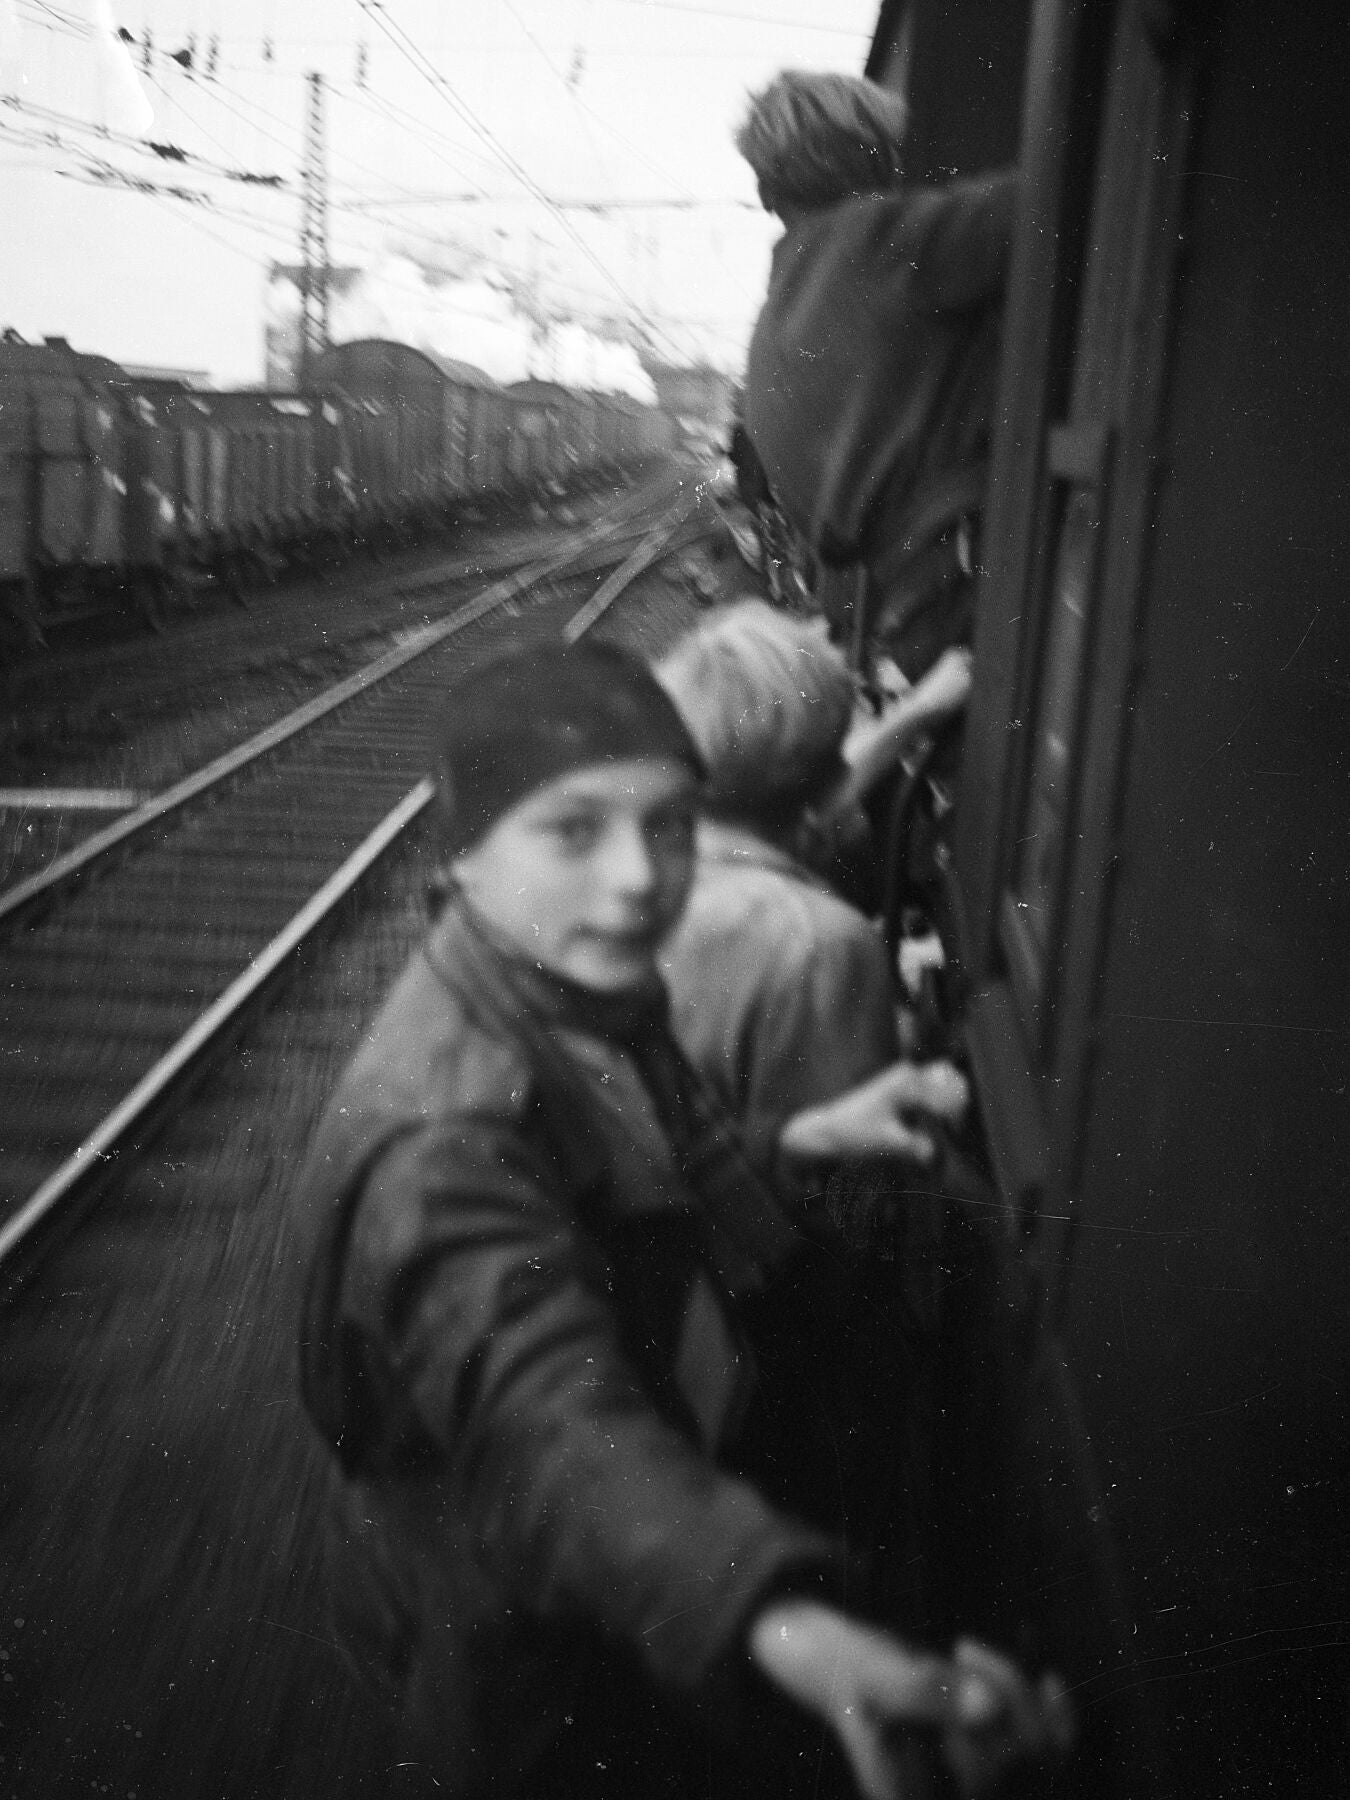 Boys Cling On to a Train as They Celebrate The Netherlands' Freedom from German Occupation (IV) - by Menno Huizinga - 1945